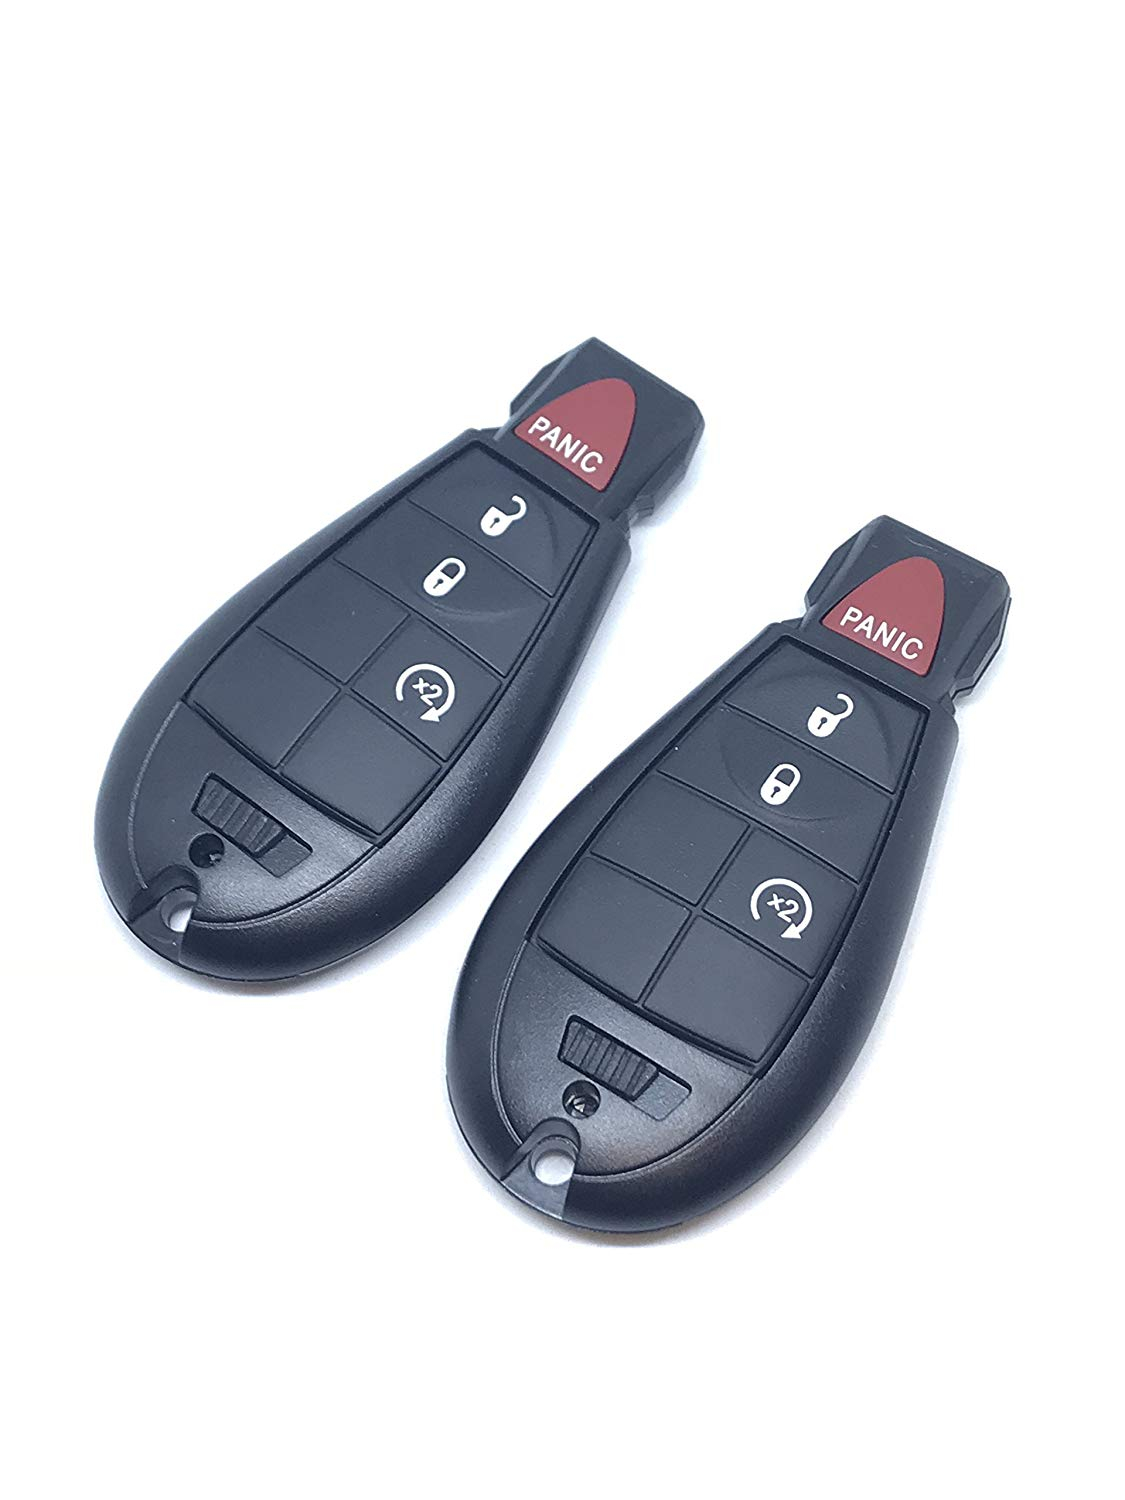 2 Pack Keyless2Go Keyless Entry Remote Car Key for RAM Vehicles That Use 4 Button Fobik GQ4-53T with Remote Start